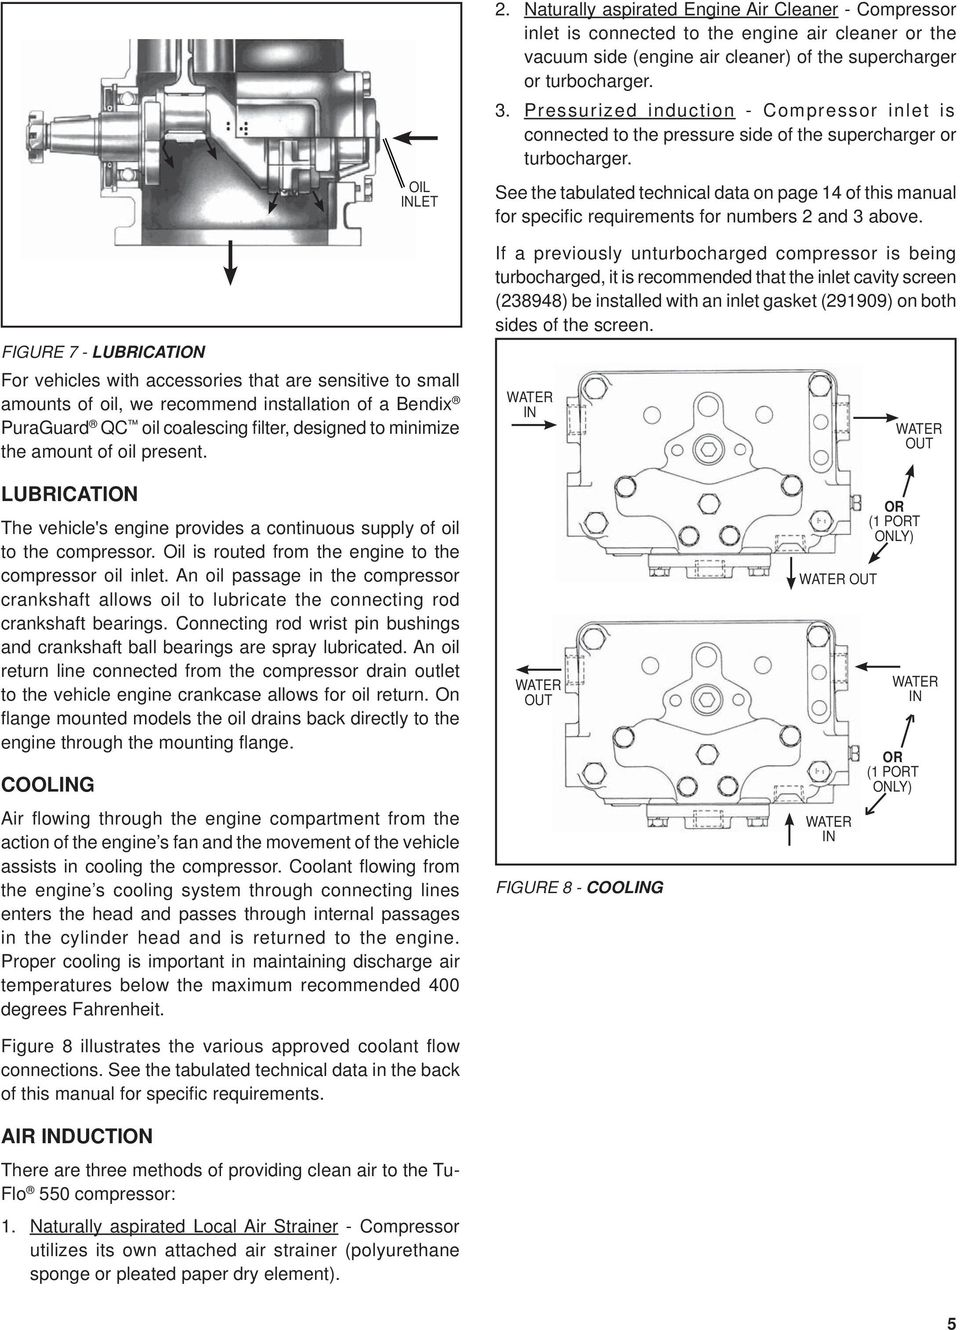 Sd Bendix Tu Flo 550 Air Compressor Description Pdf Figure 17 Wiring Diagram Pressurized Induction Inlet Is Connected To The Pressure Side Of Supercharger